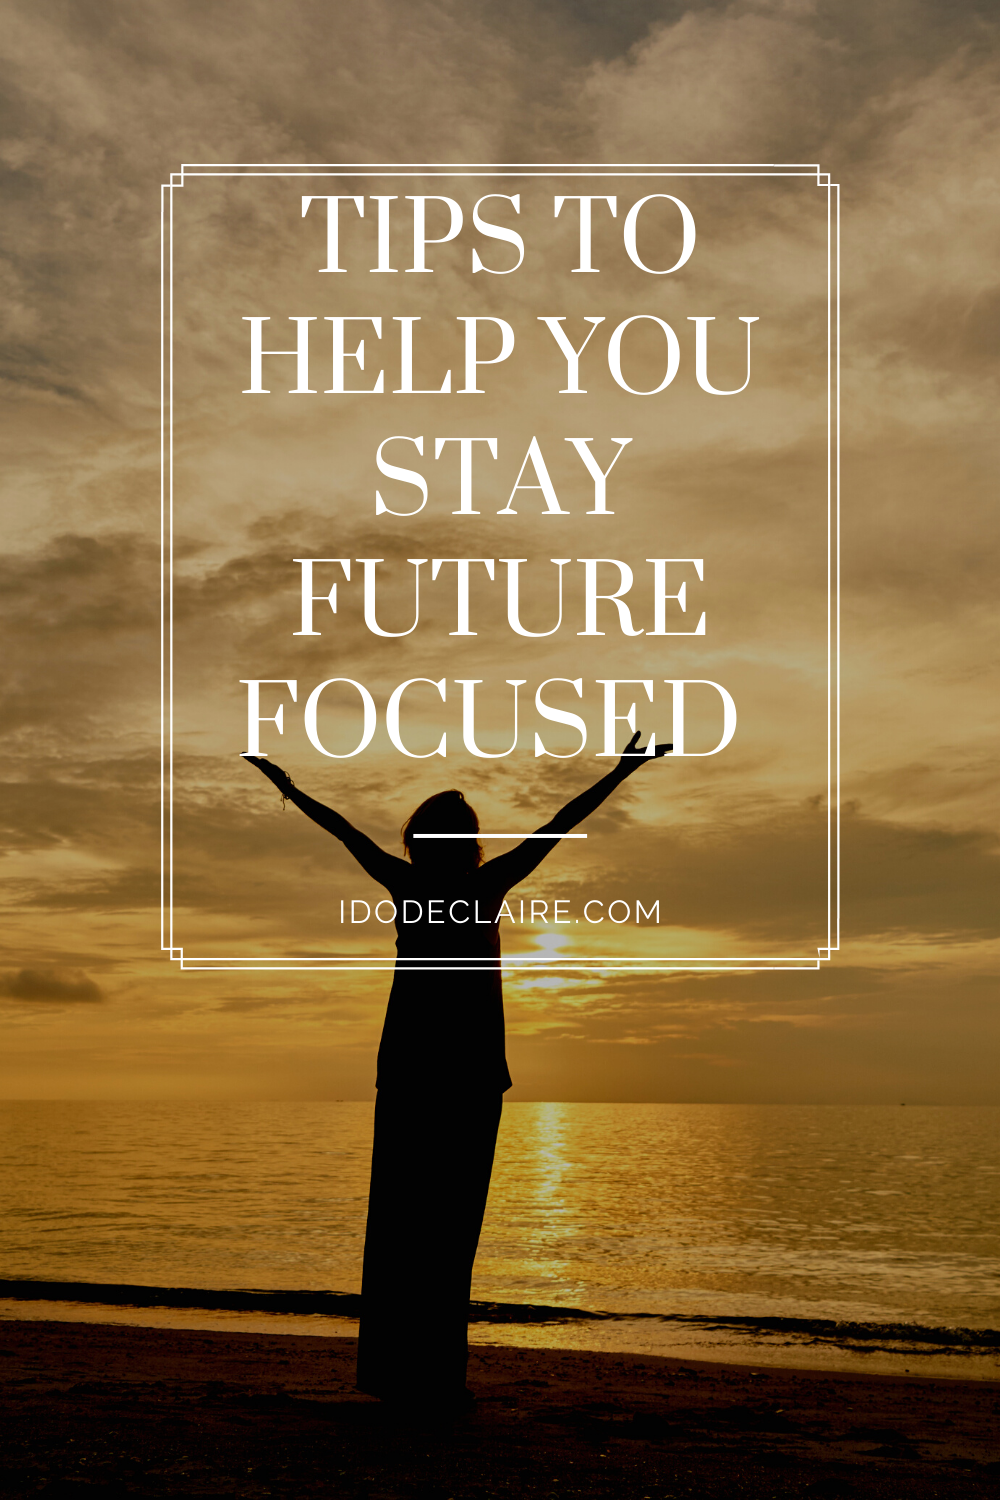 Tips to Help you Stay Future Focused